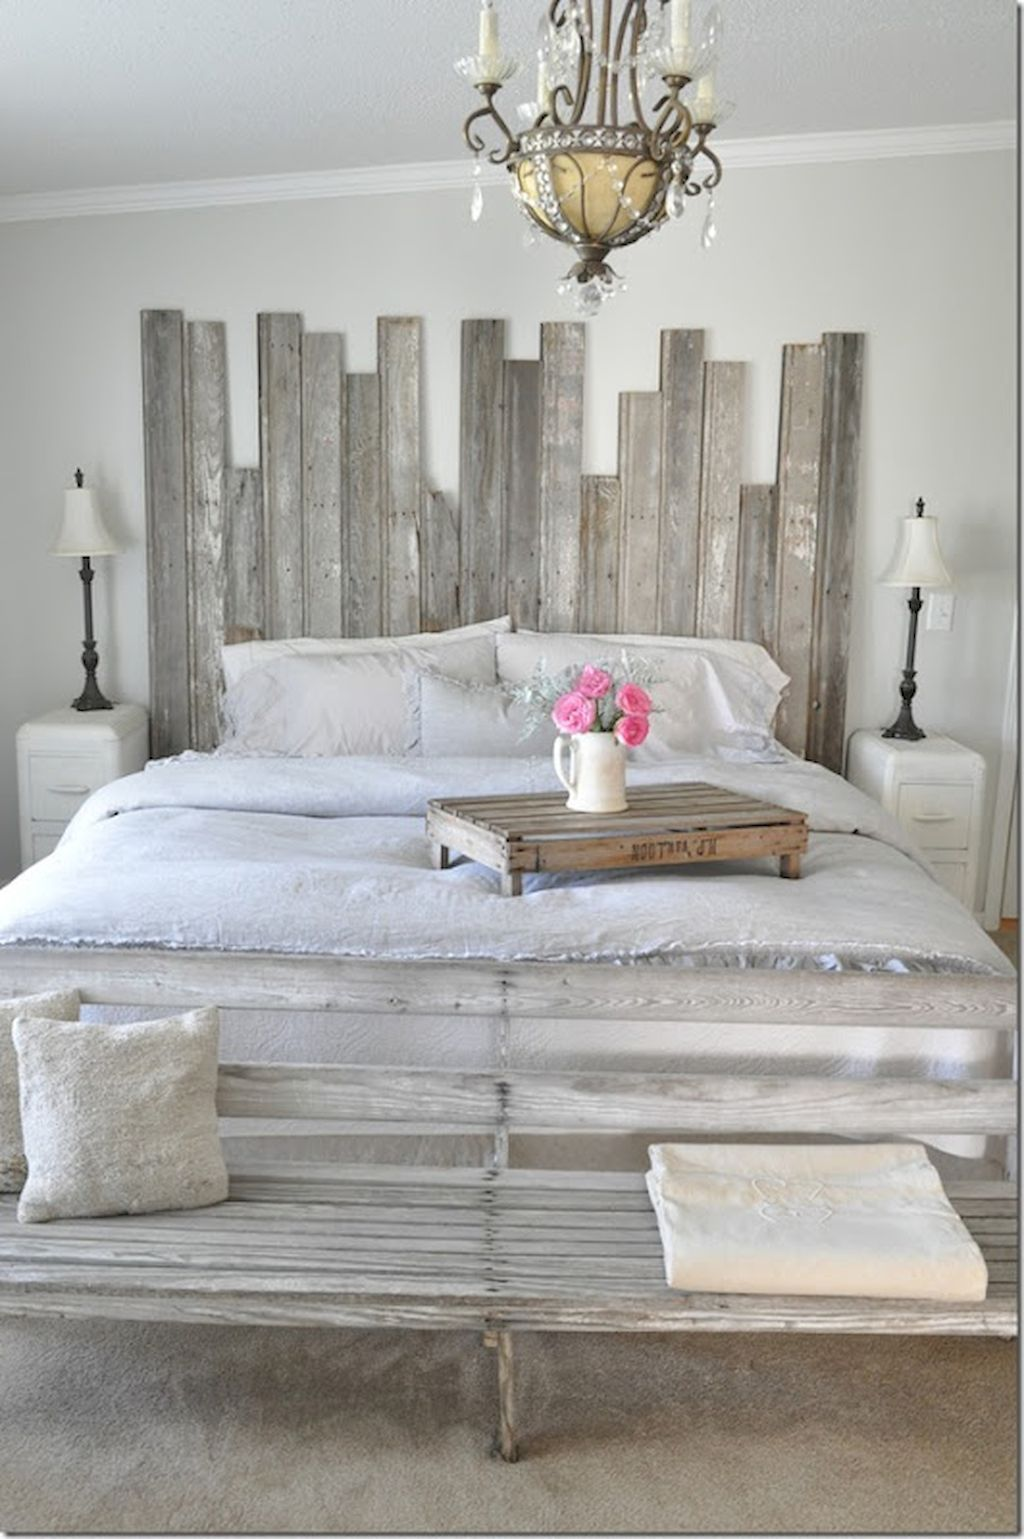 Pin By Besideroom On Living Room Ideas: Pin By Heidi Otis On Bedrooms